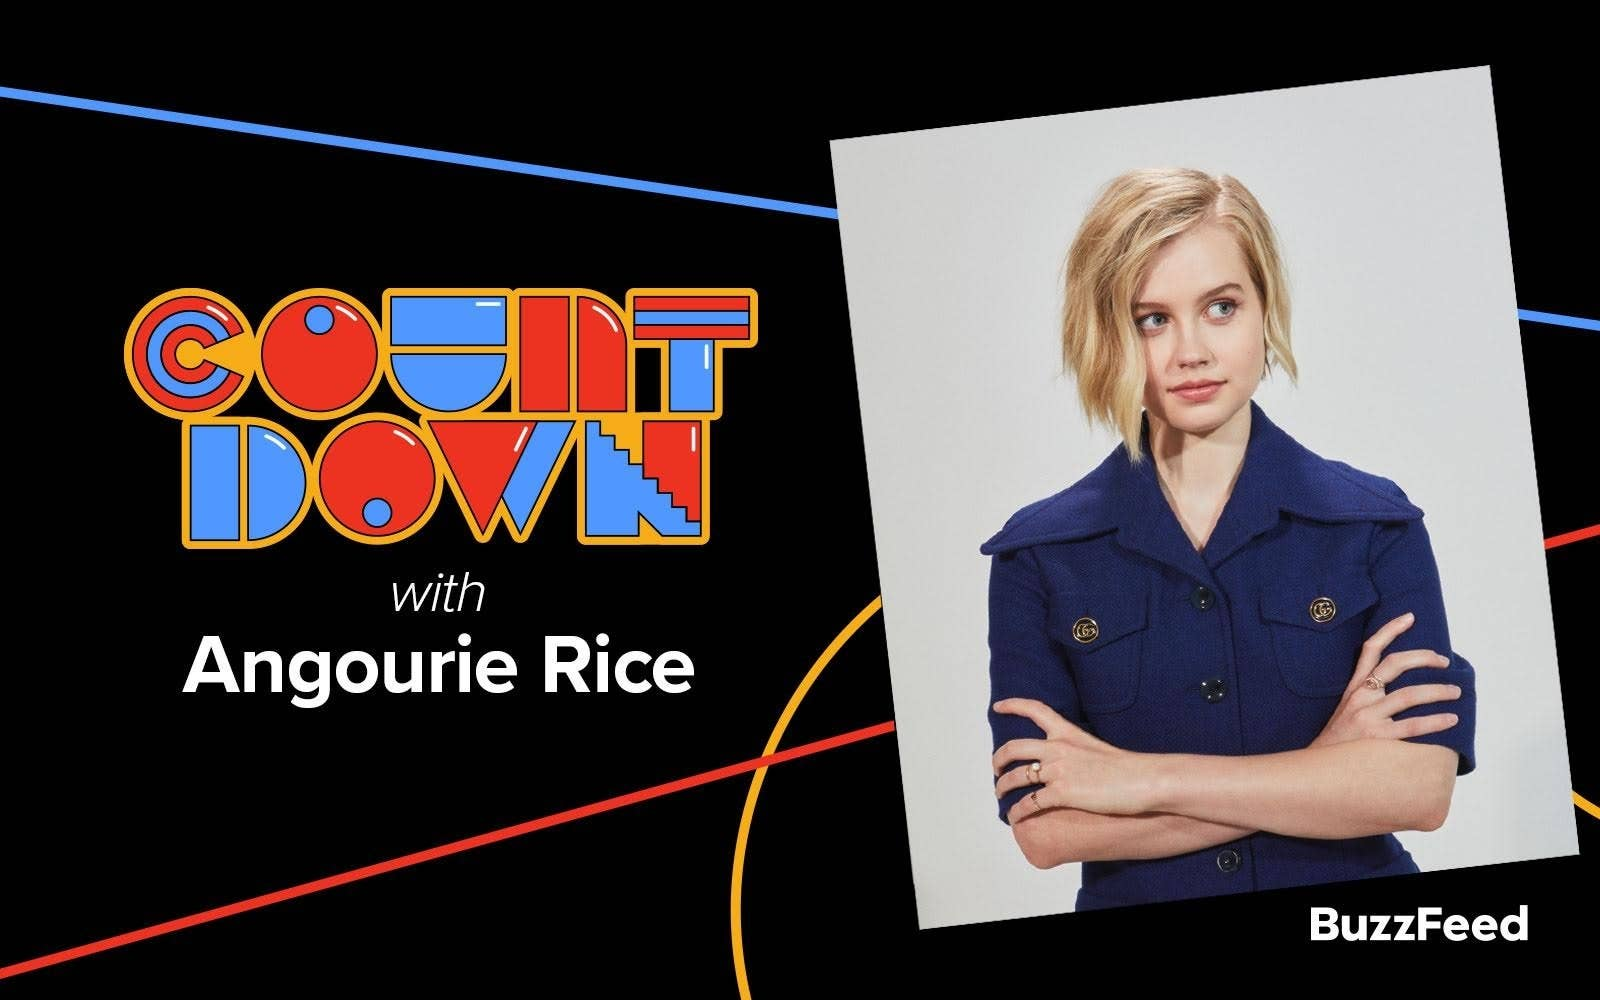 Countdown with Angourie Rice